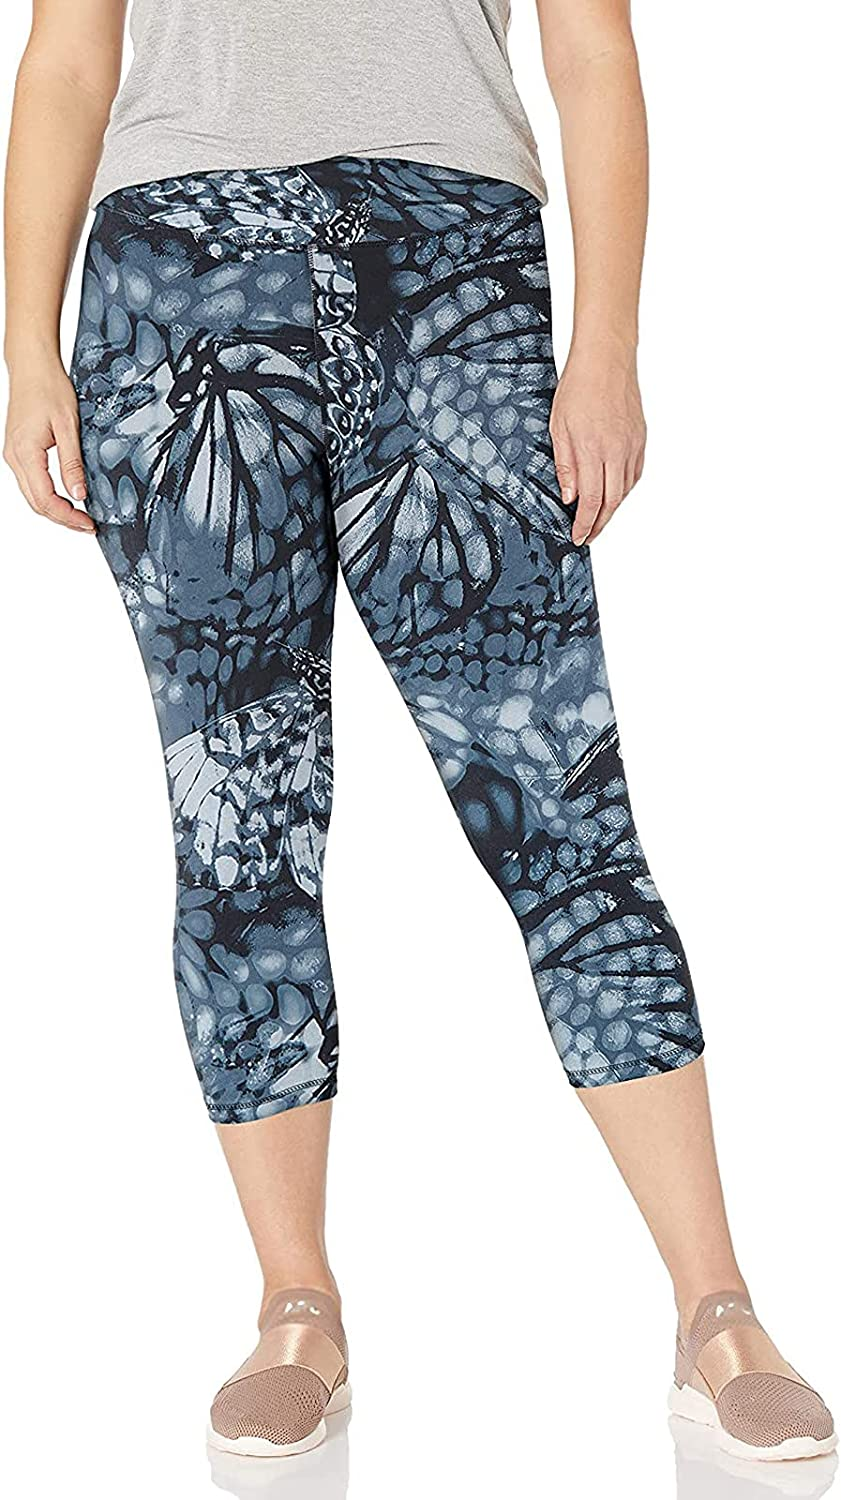 Max 81% OFF OCLUN Plus Size Yoga Pants Stretch High material for Women Drawstring Cropped